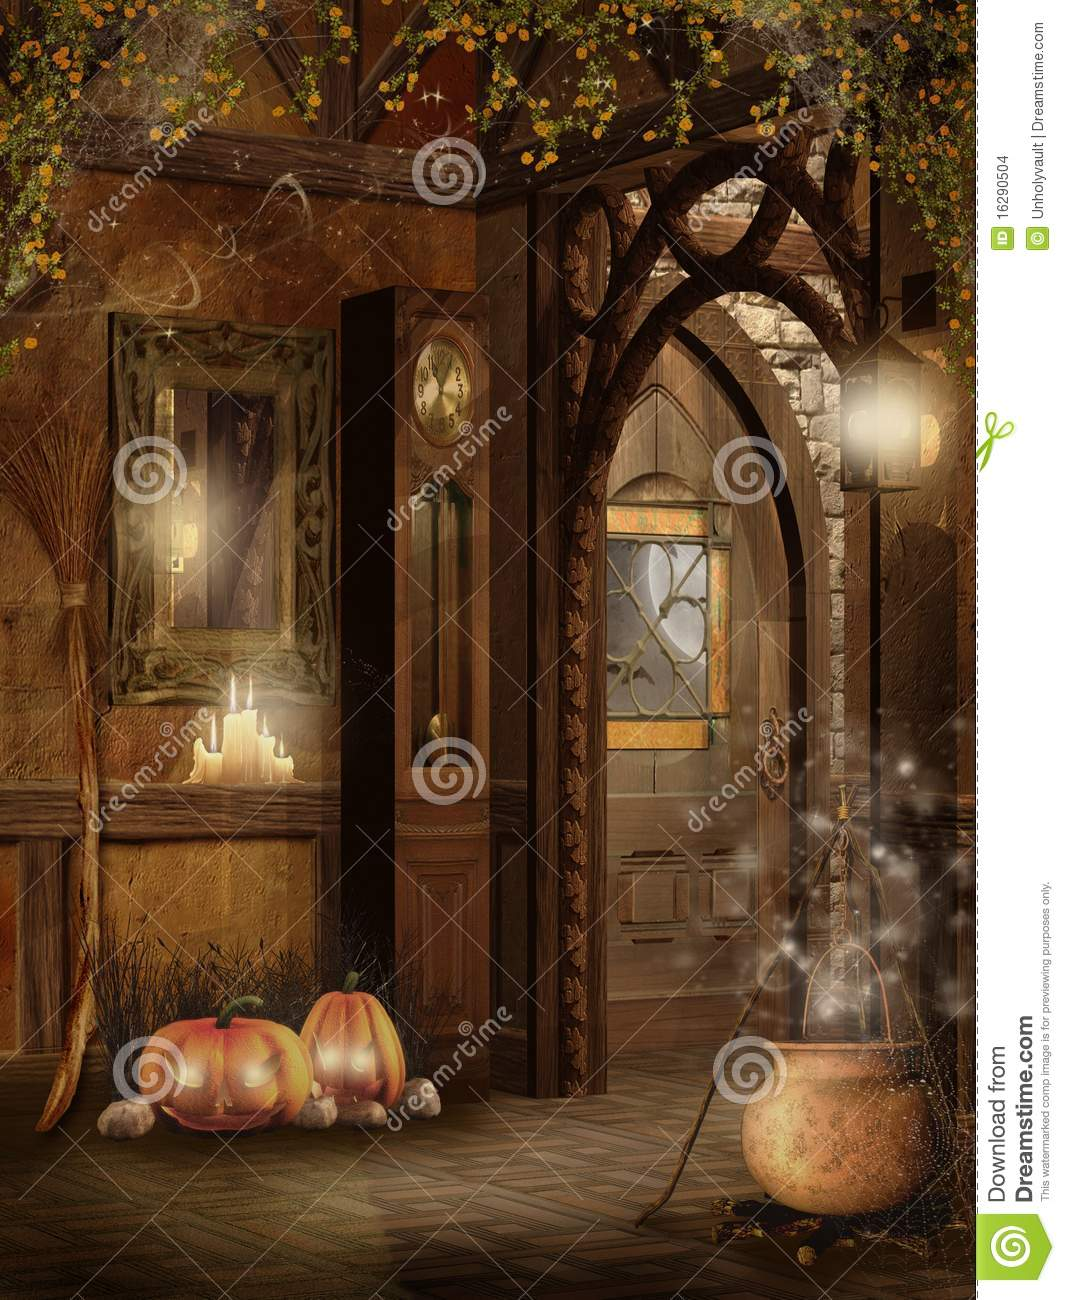 Diy halloween yard decorations - Cottage Interior With Halloween Decorations Stock Images